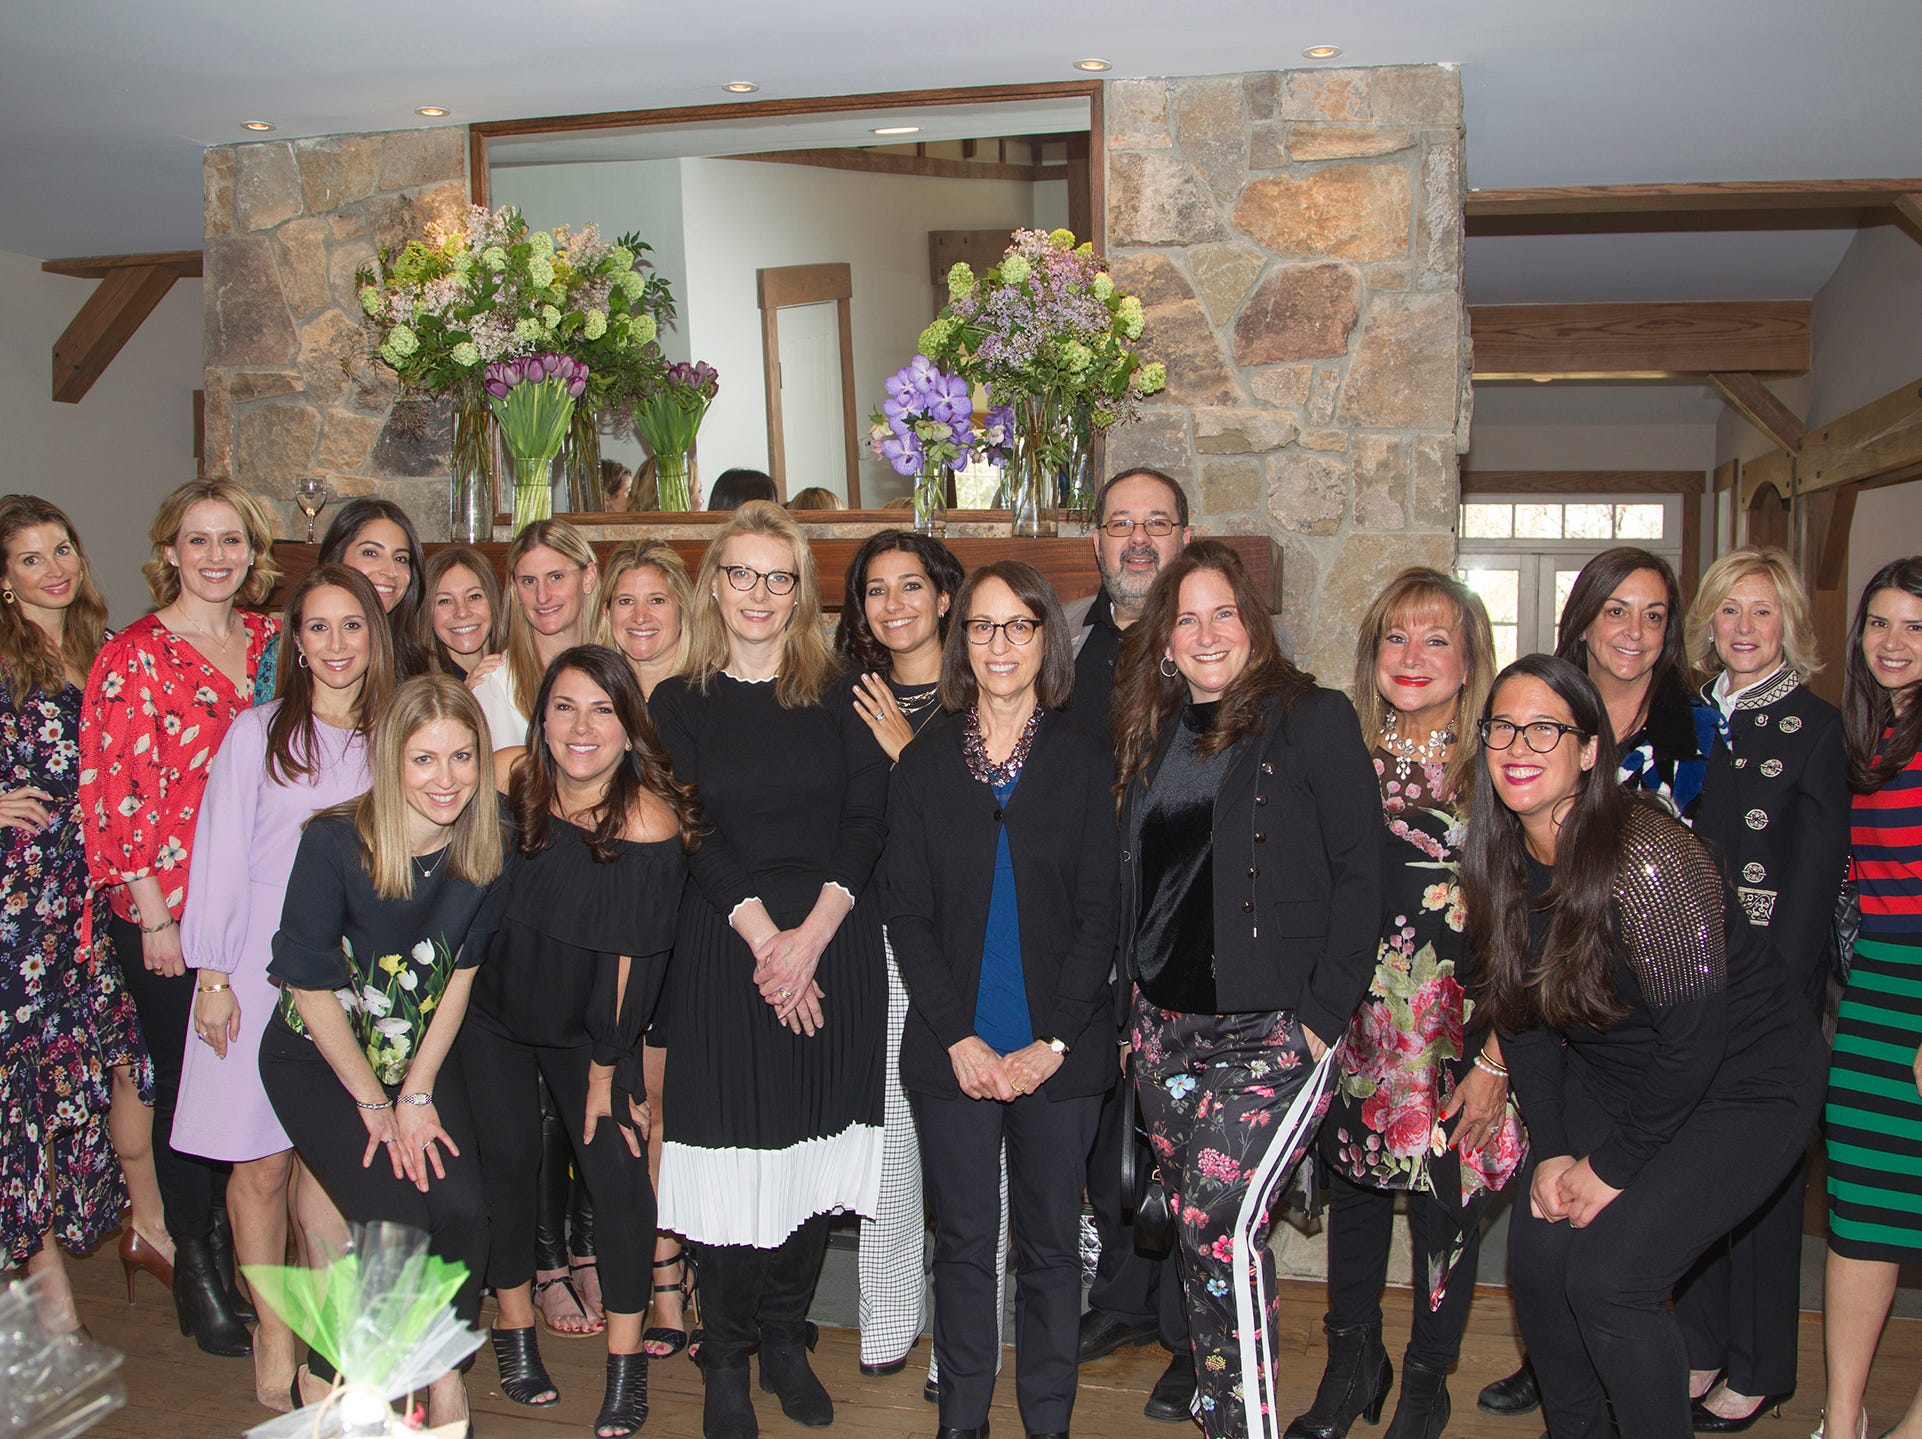 Lavish Lunch Committee Members. Kaplen JCC on the Palisades held its annual Lavish Lunches for Seniors in our Community. 04/04/2019